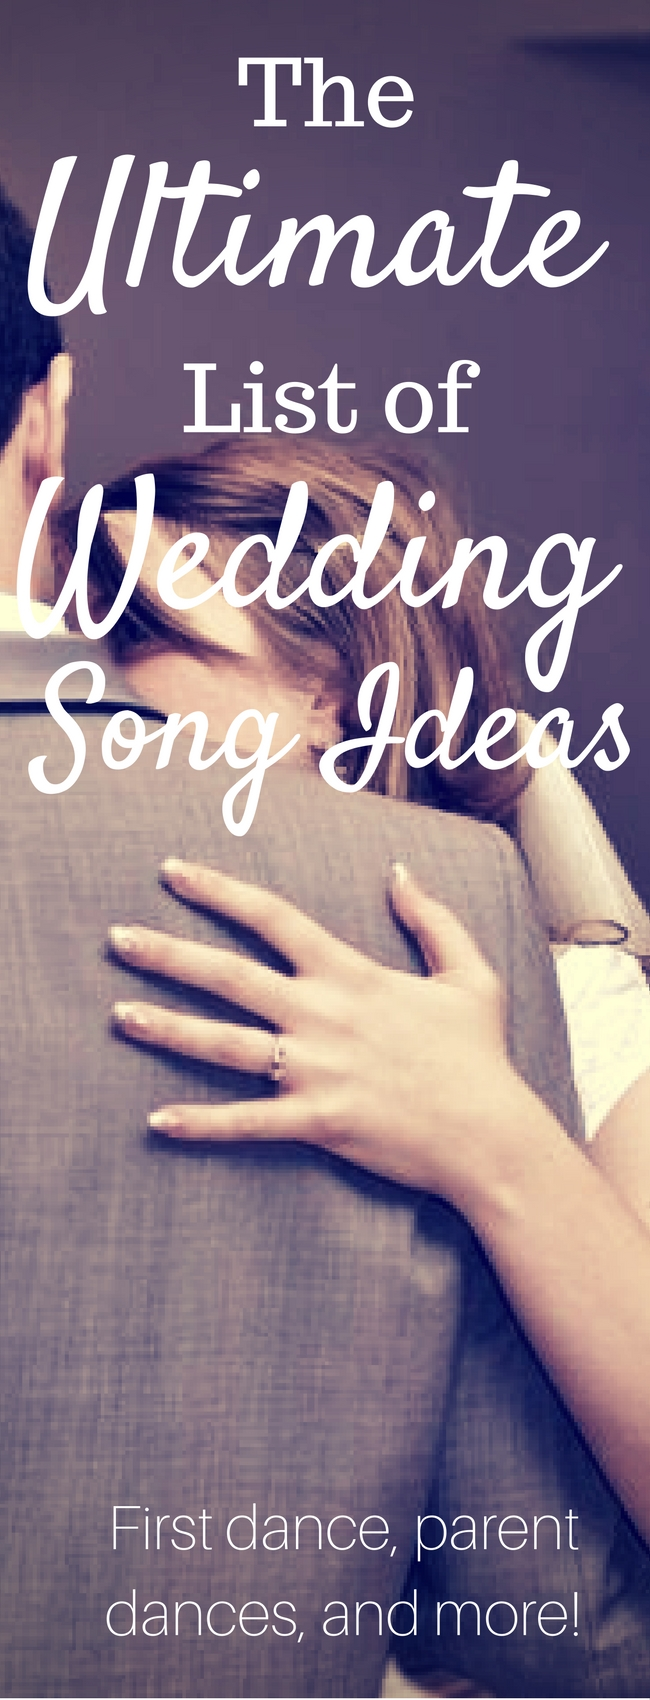 Wedding Song Ideas Playlist First Dance Songs Mother